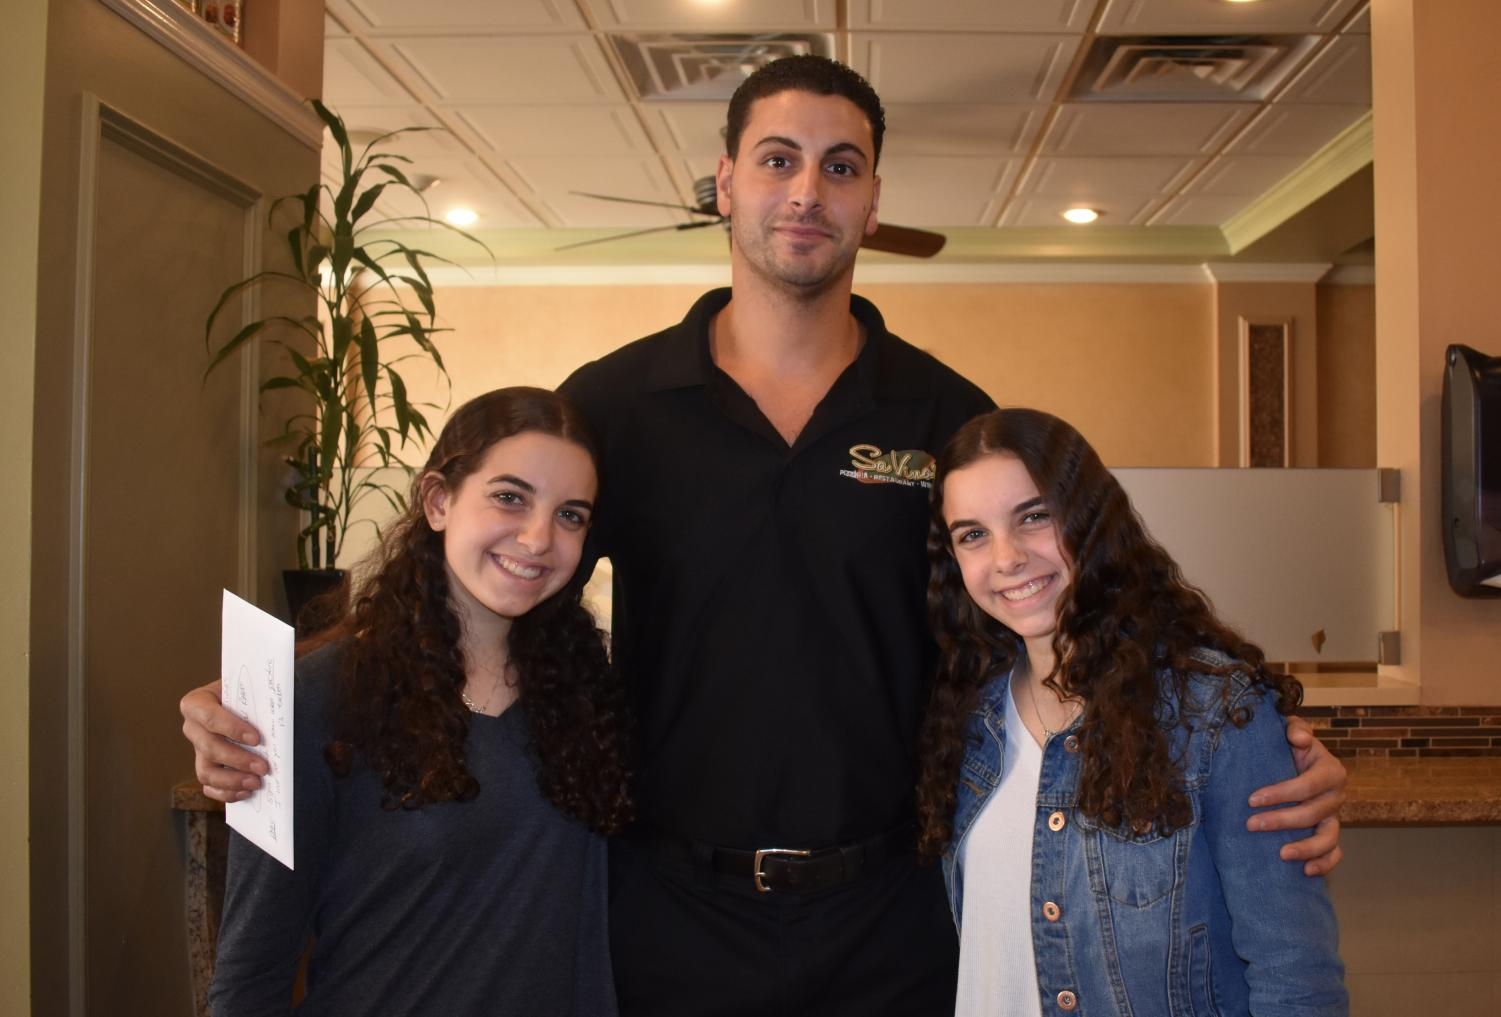 Sophie and Emma Ward accept a check on behalf of the SCOPE club from Michael Biancaniello, proprietor  of SaVino's